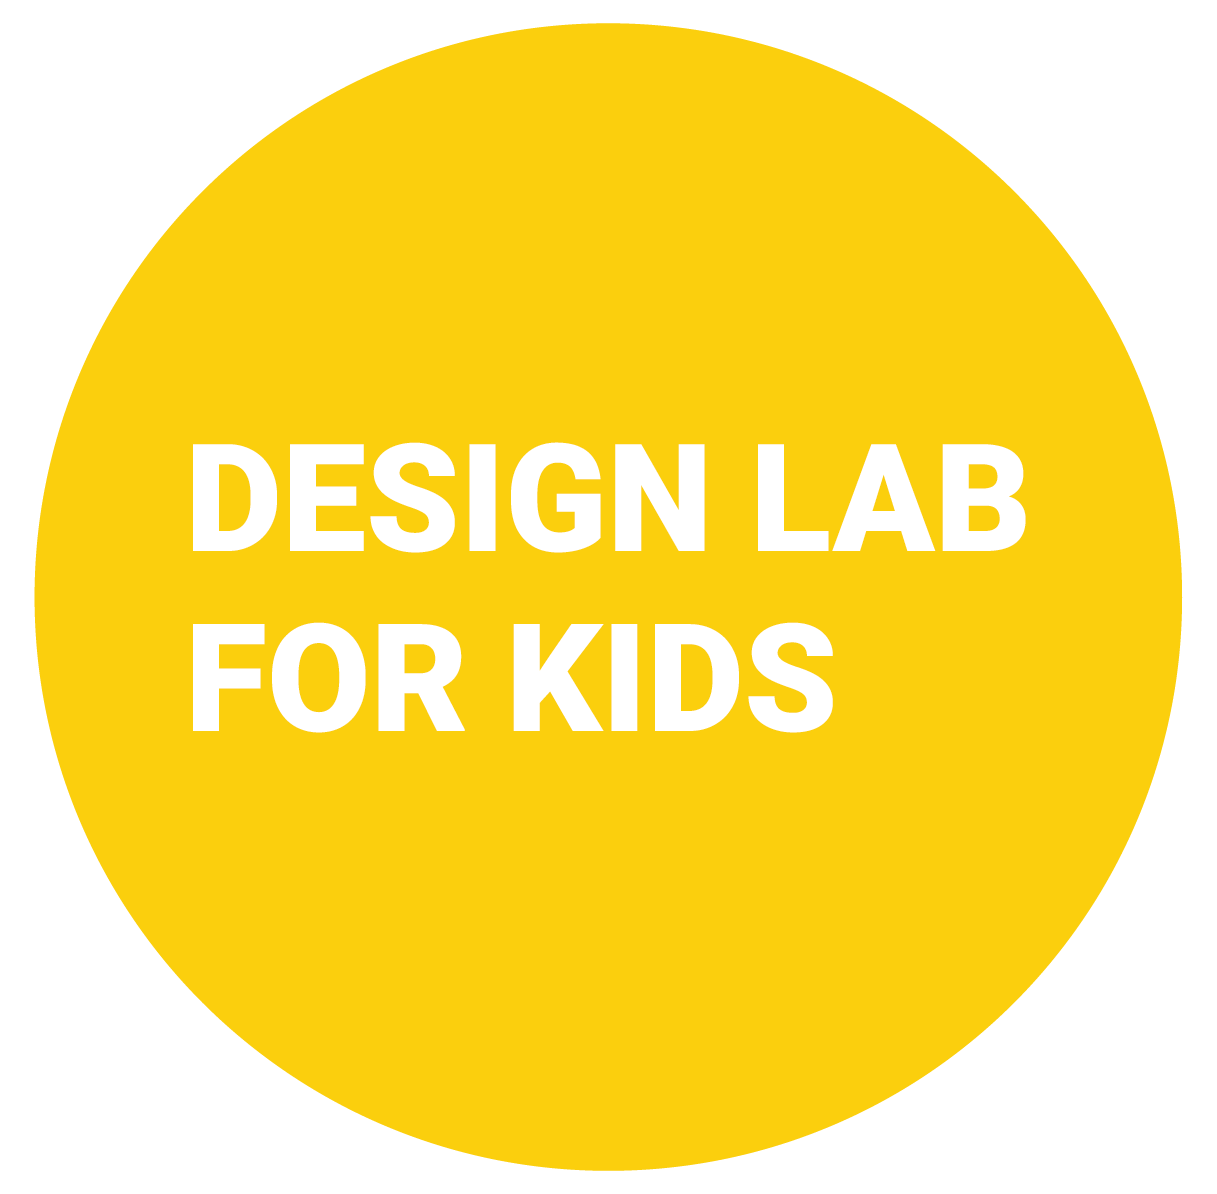 Design Lab for Kids